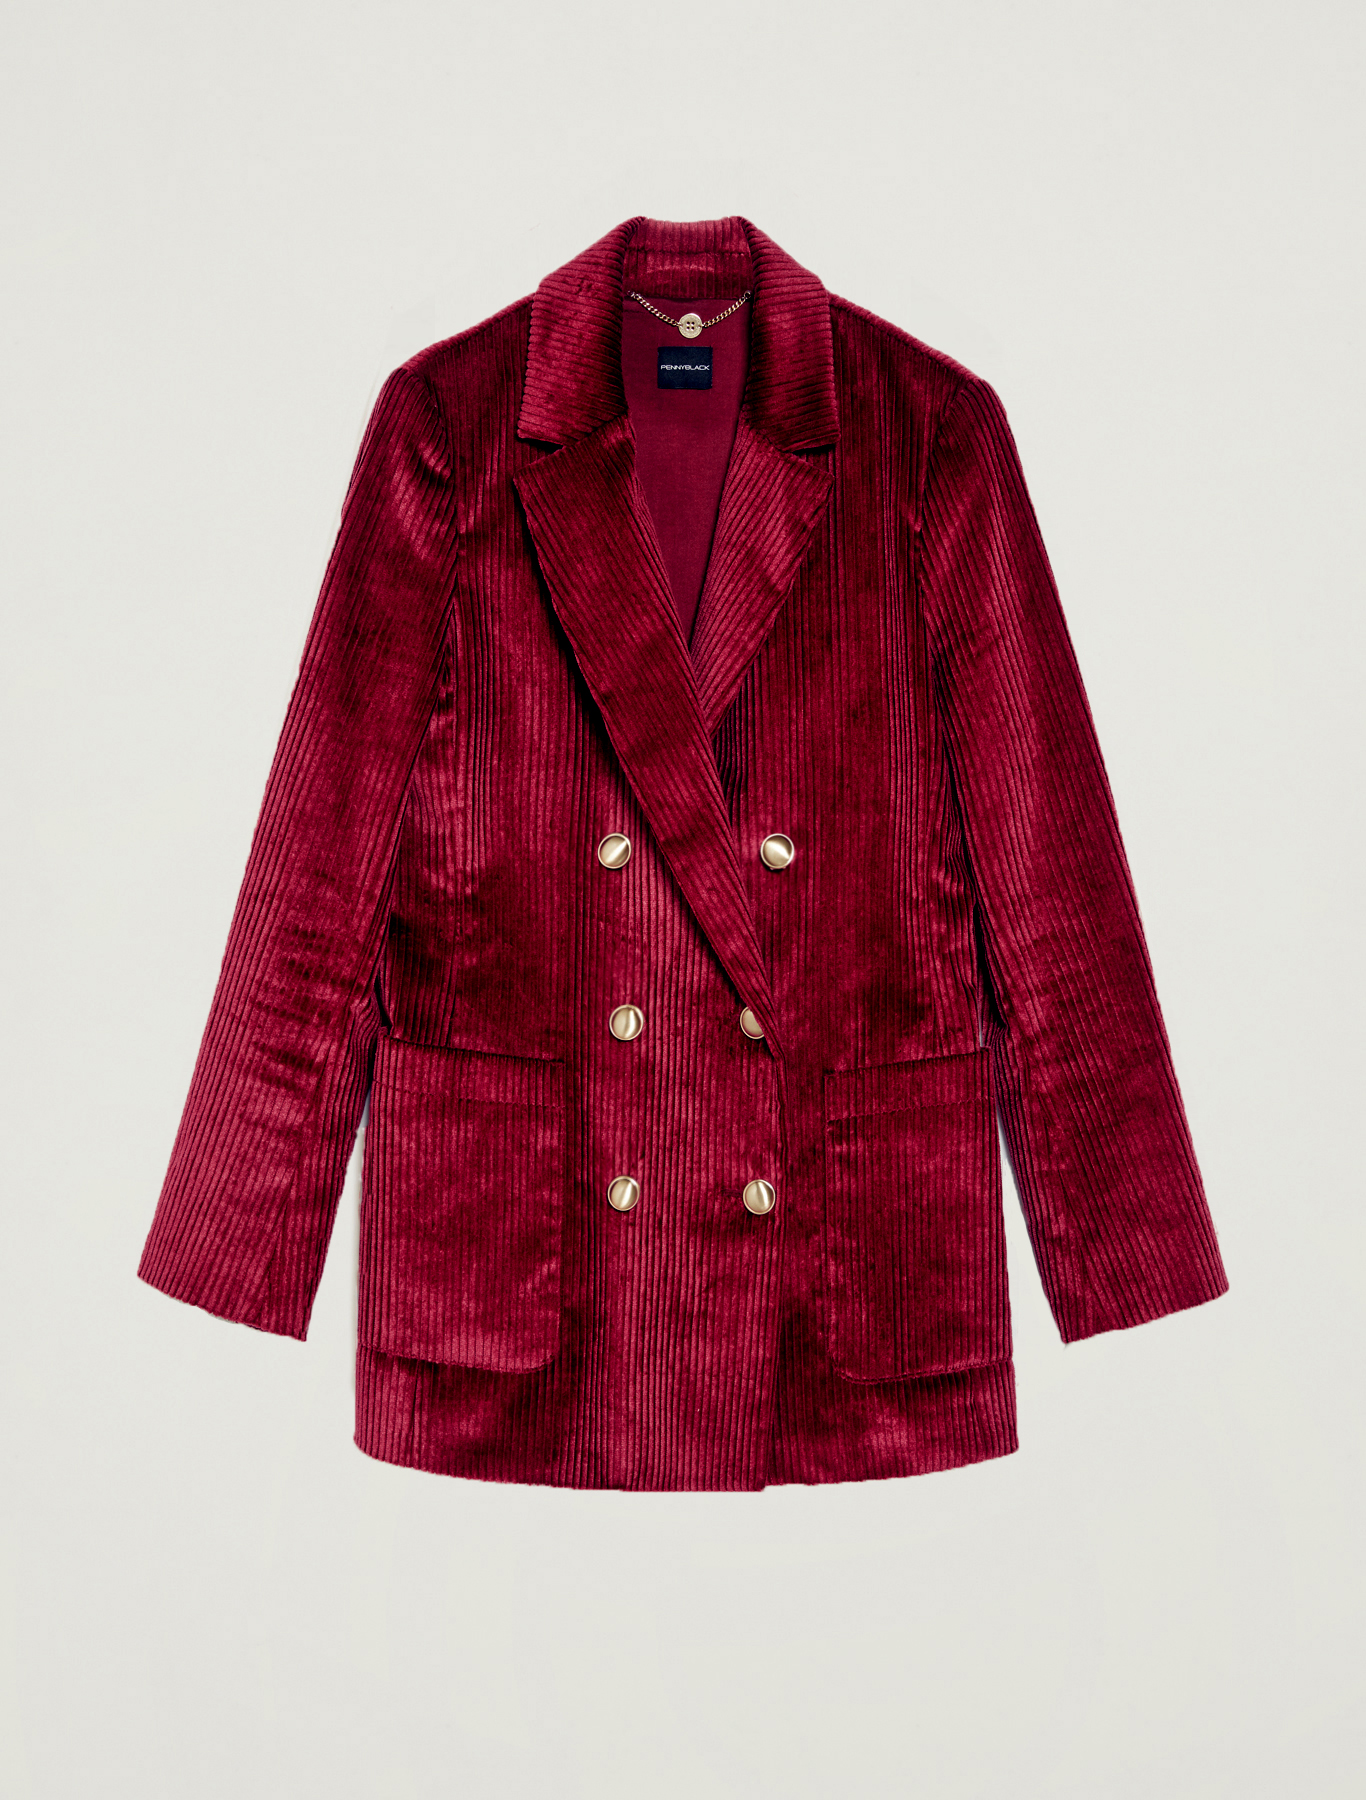 Double-breasted blazer in velvet - burgundy - pennyblack